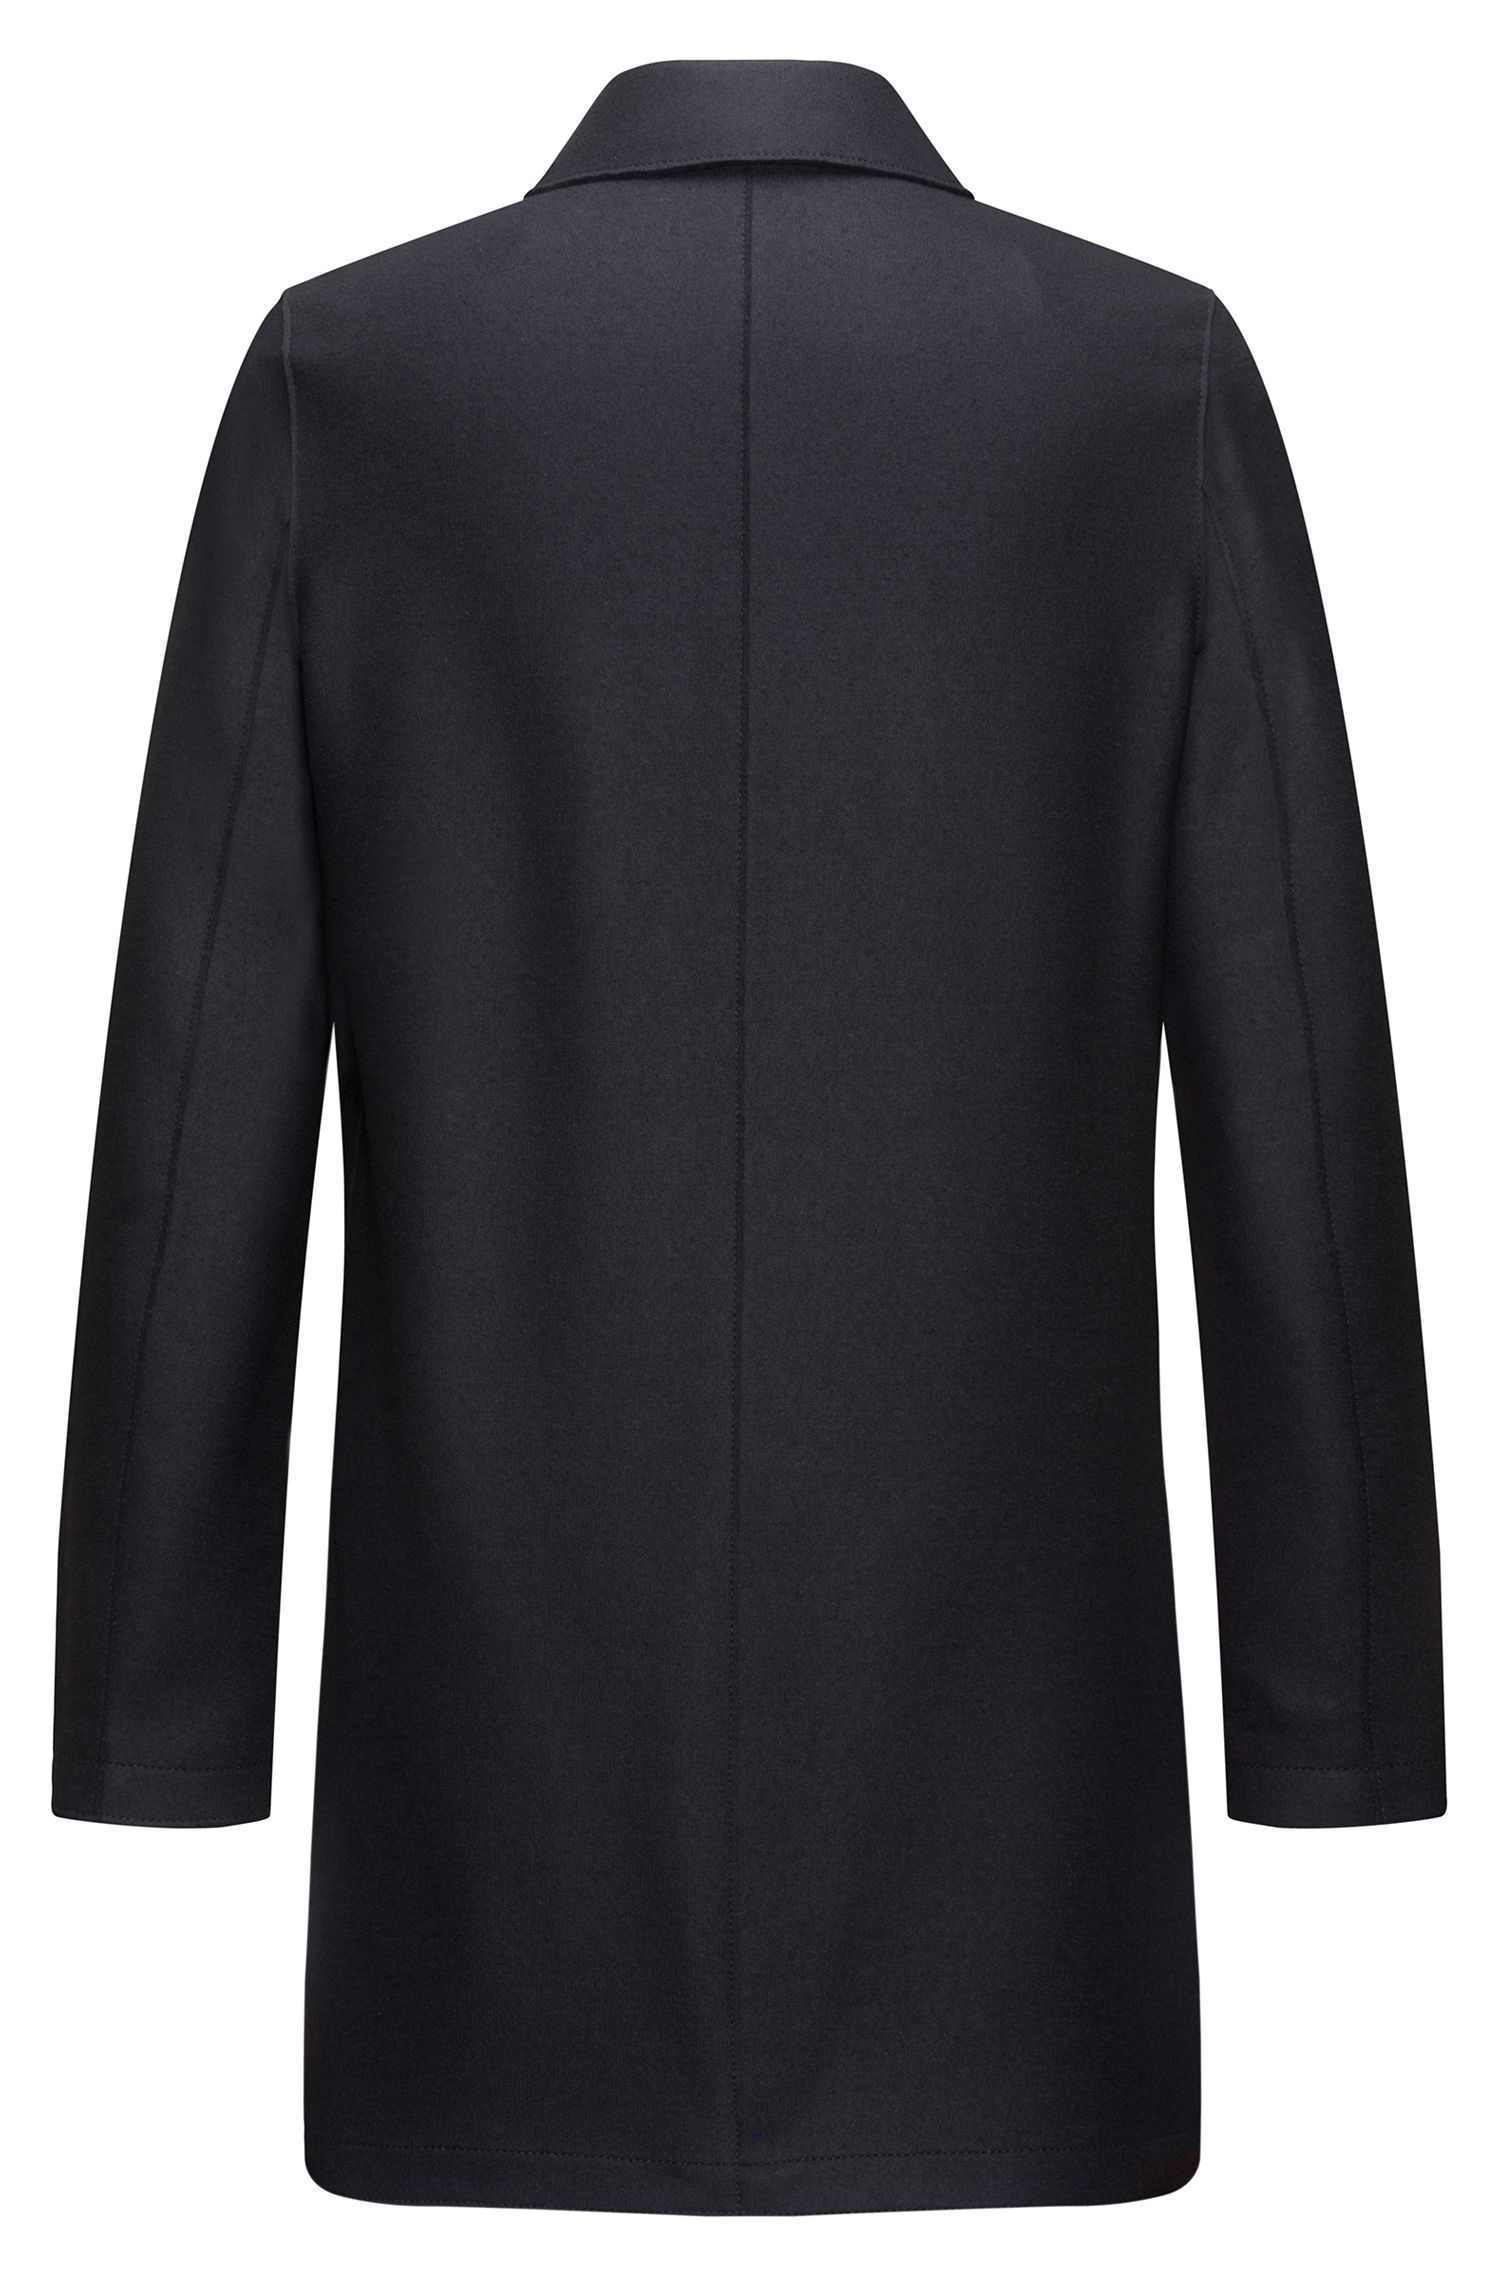 Regular-fit double-breasted shawl-collar coat in wool-blend